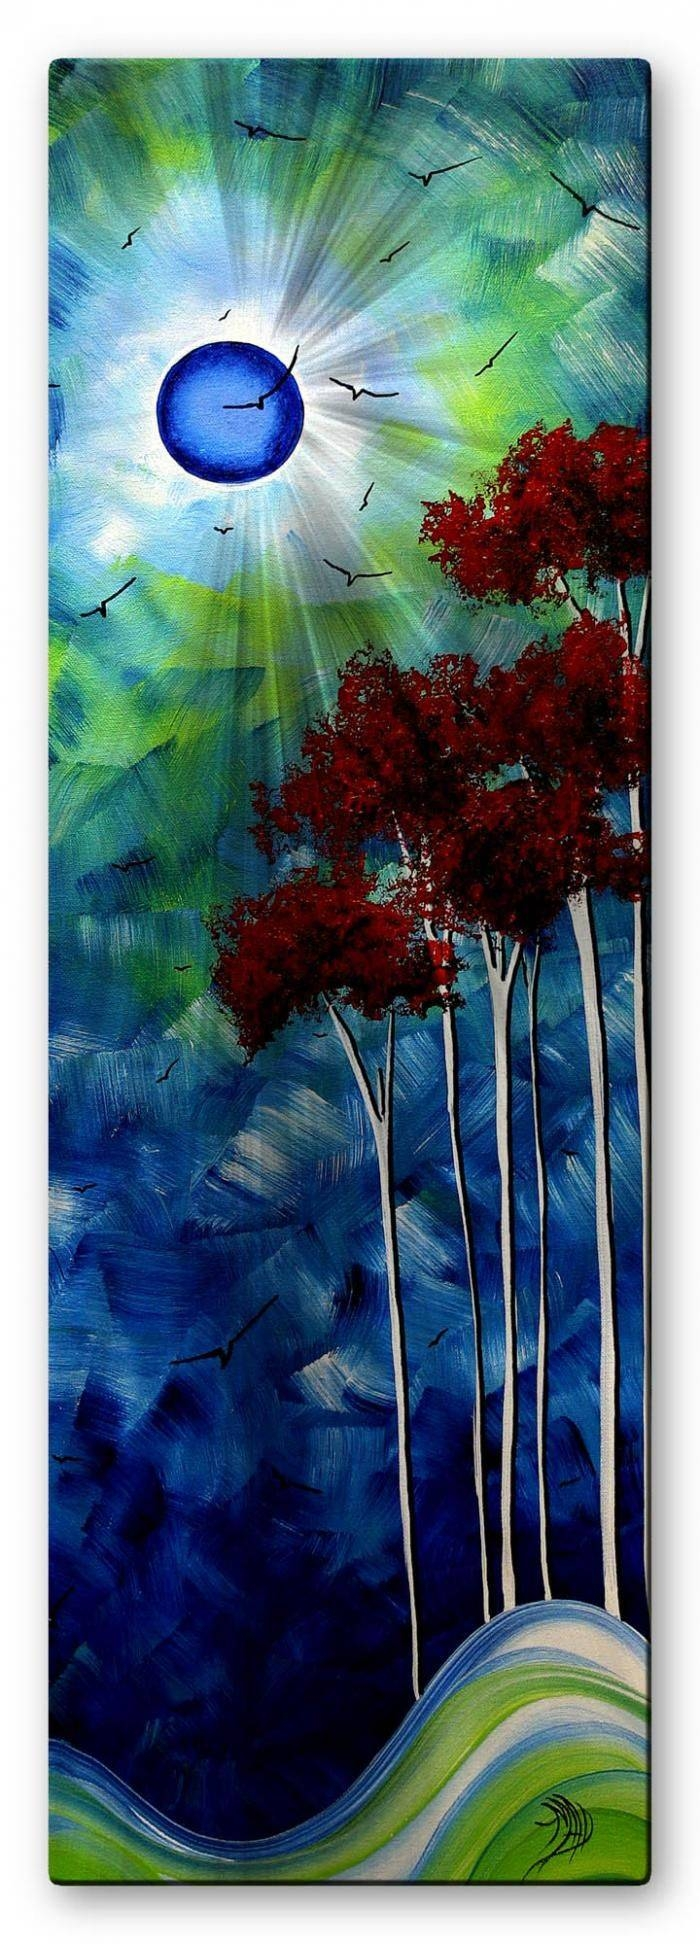 65 Best Artist  Megan Duncanson Images On Pinterest | Abstract Art For Most Popular Ash Carl Metal Art (Gallery 29 of 30)